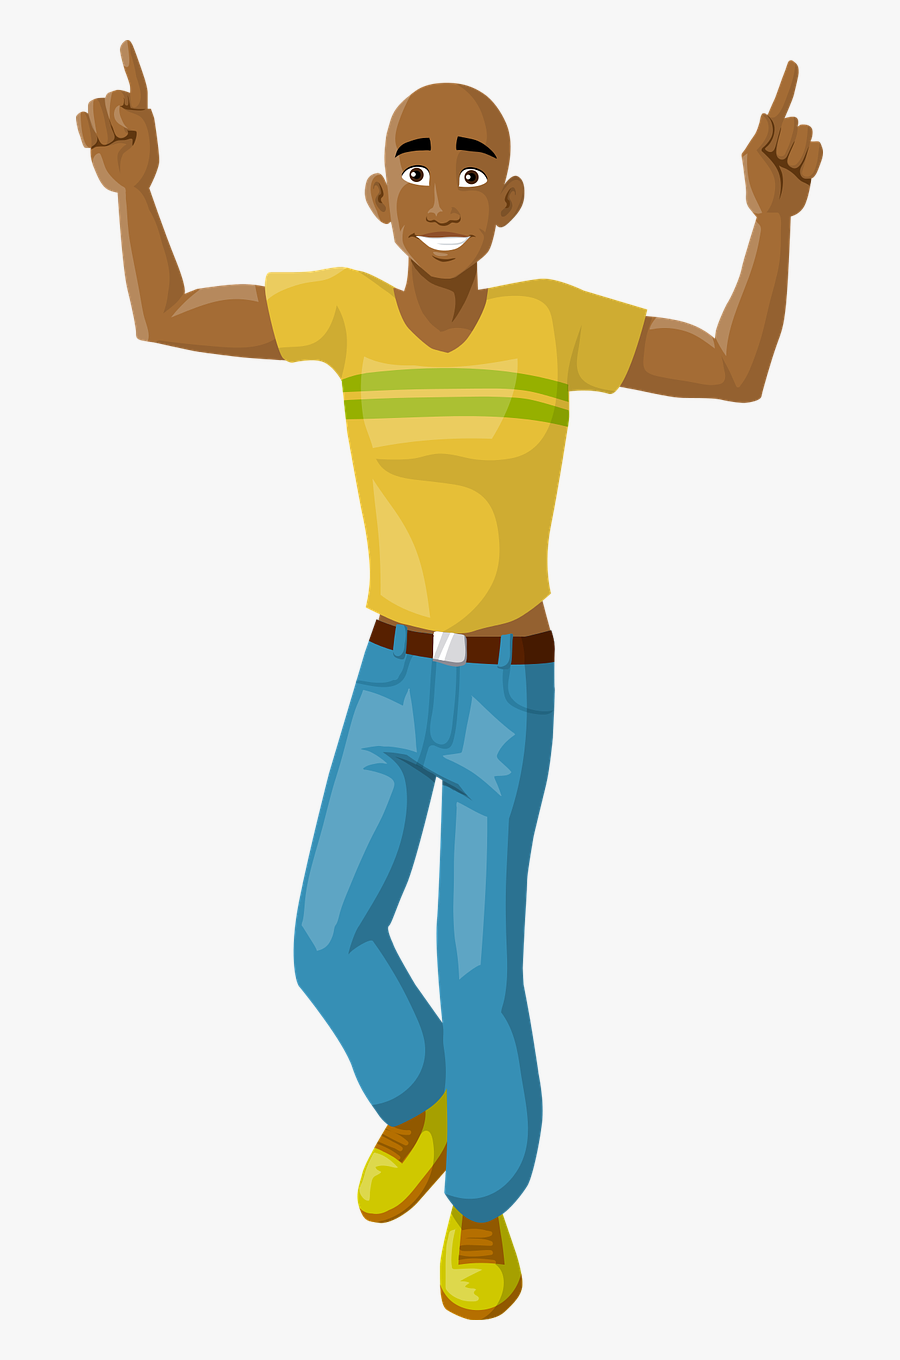 Happy Man Dancing Free Photo - Igbo Parts Of The Body, Transparent Clipart